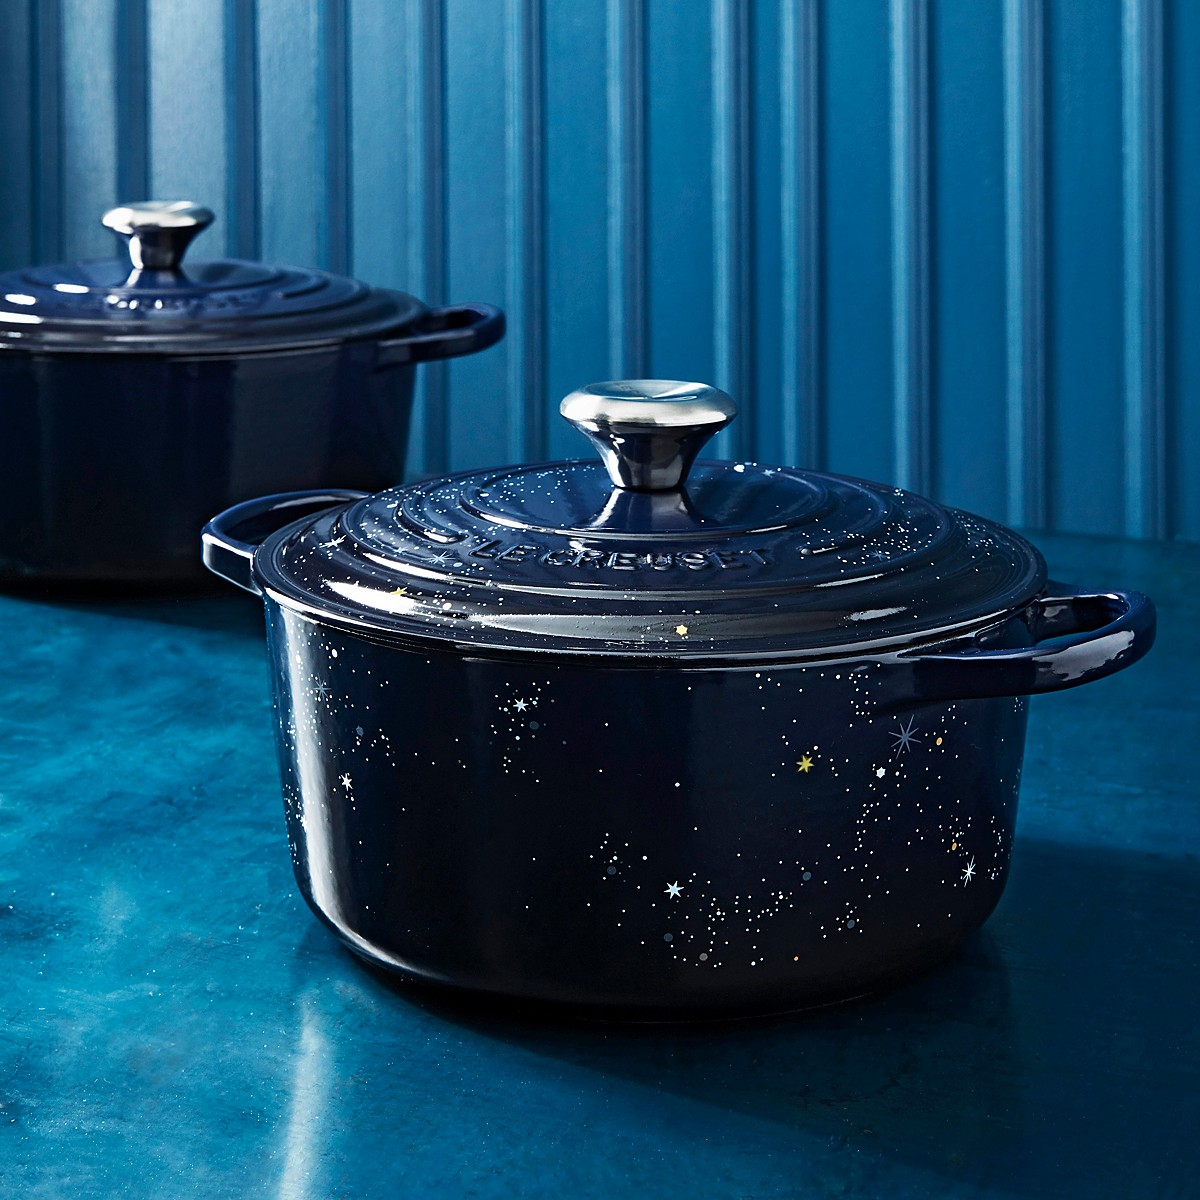 Le Creuset dutch oven with stars